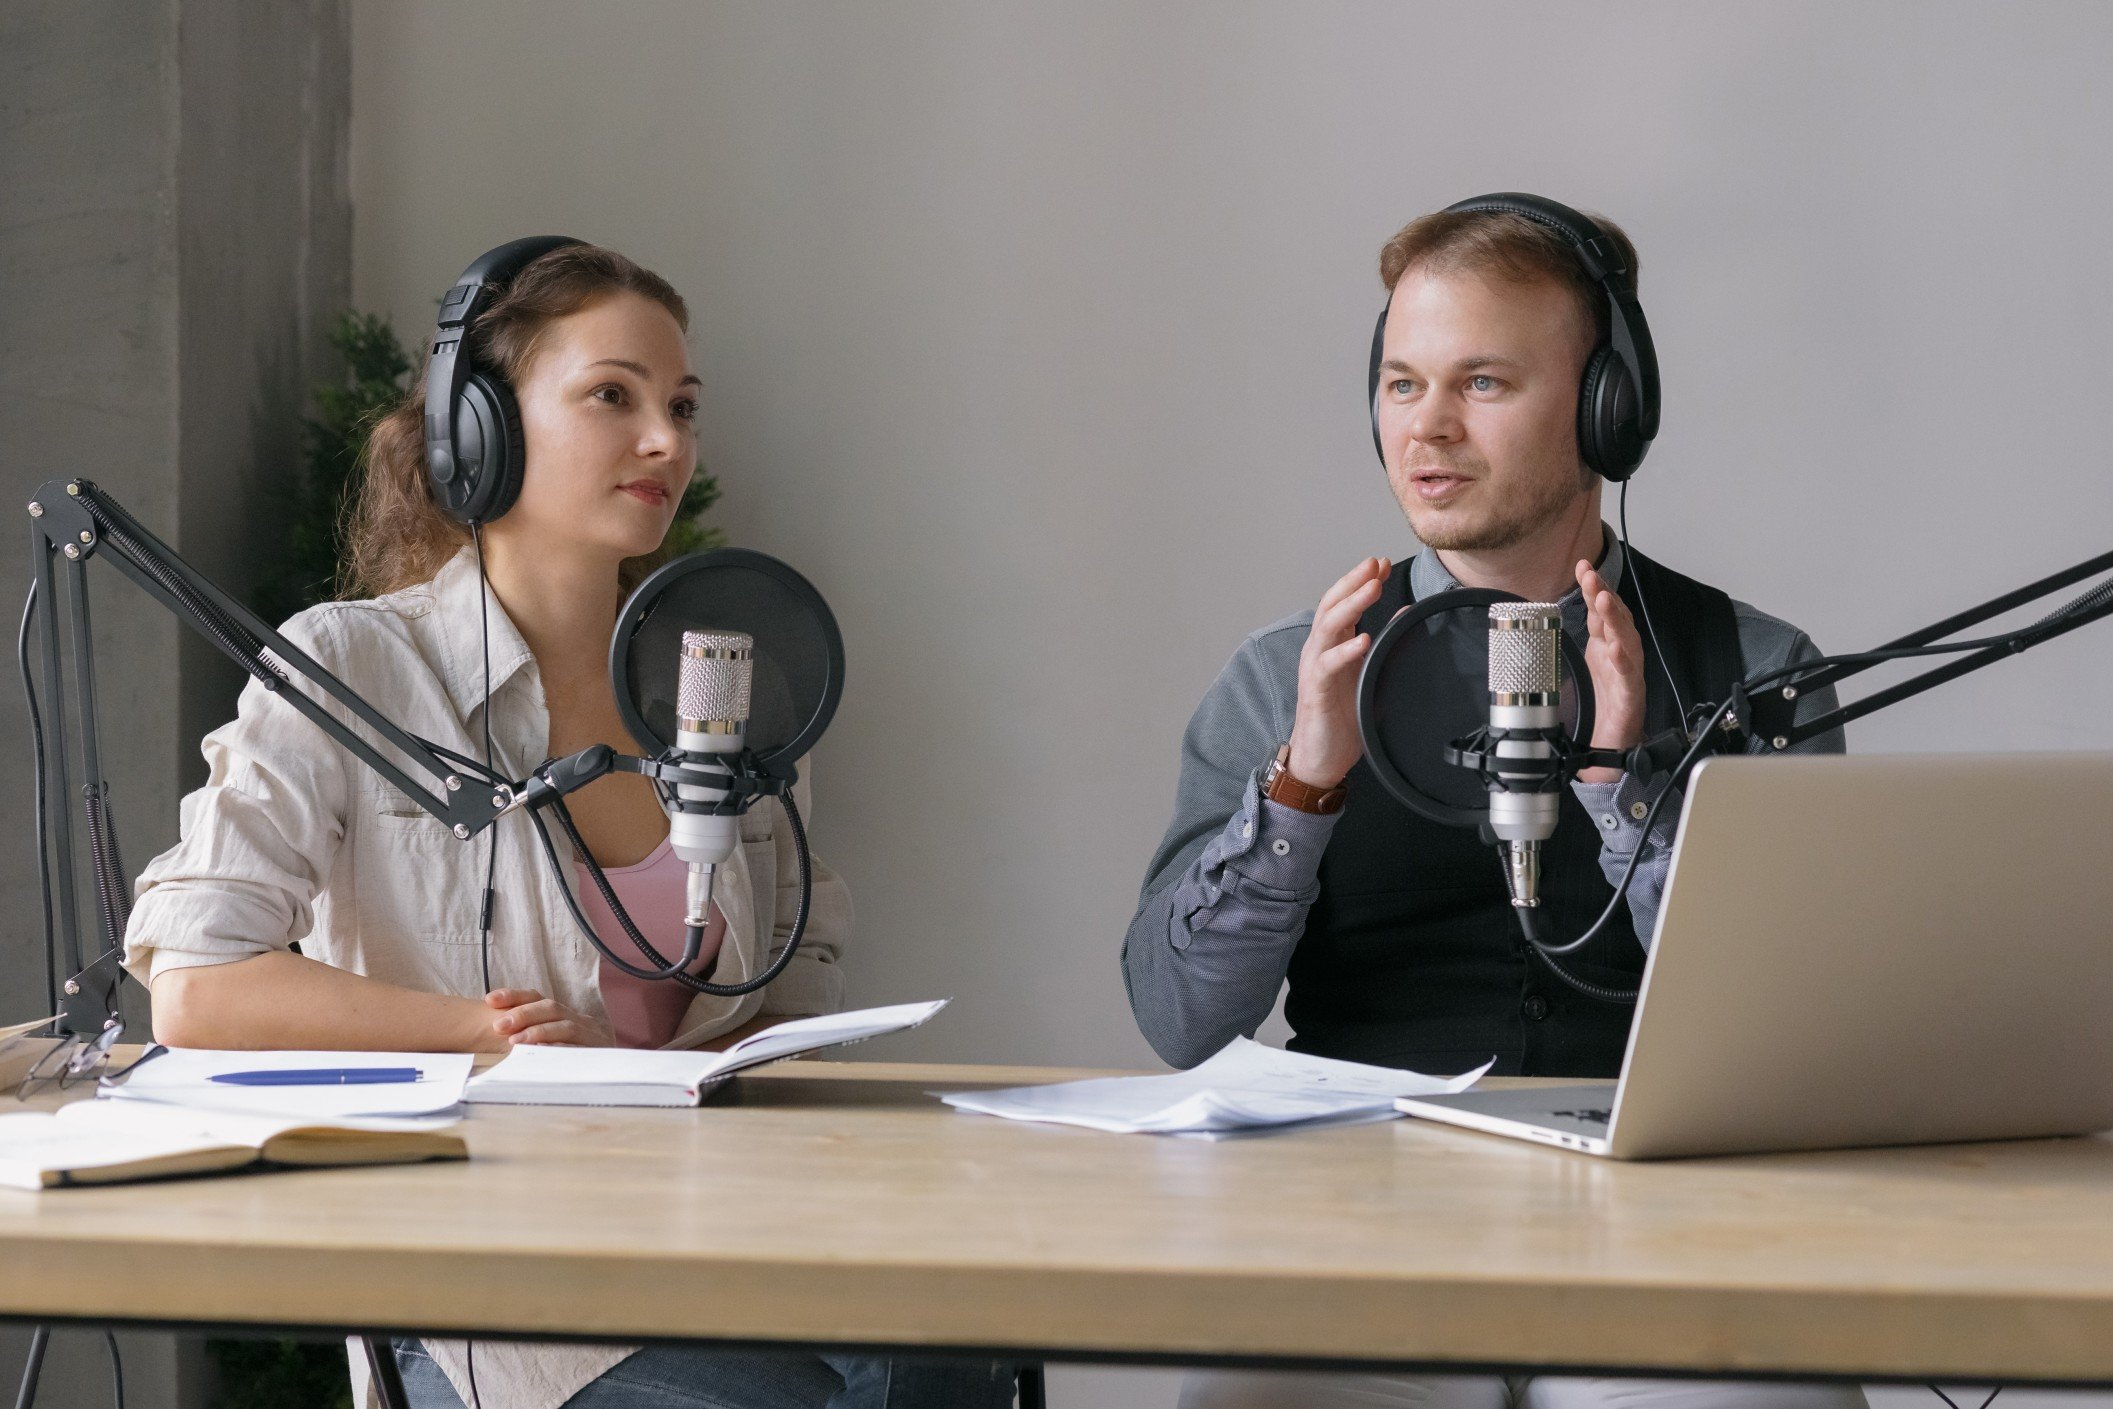 First time podcasting